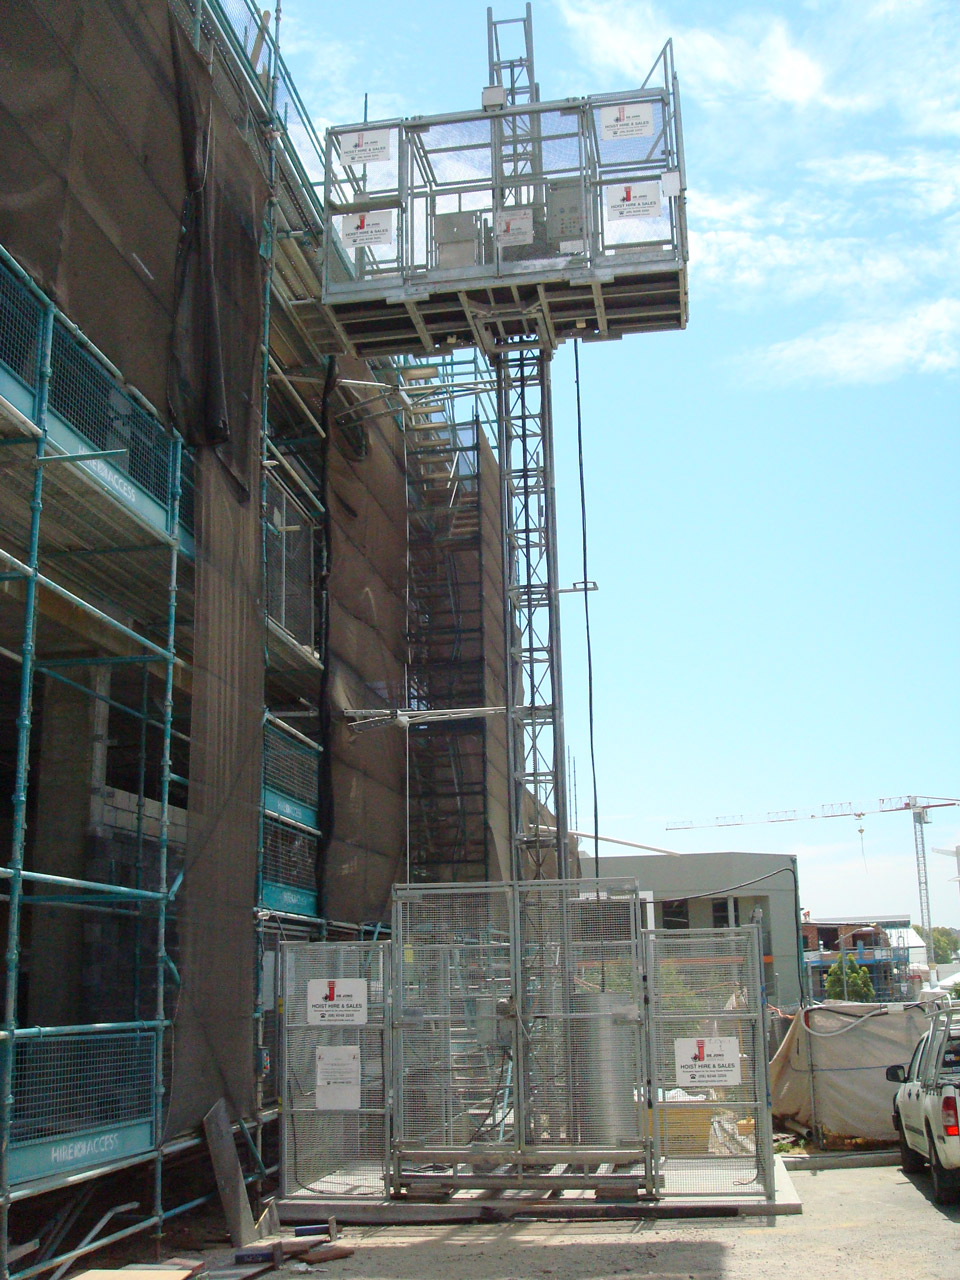 Source: http://www.dejonghoists.com.au/construction-hoists/material-hoists/mp2000-2000kg/